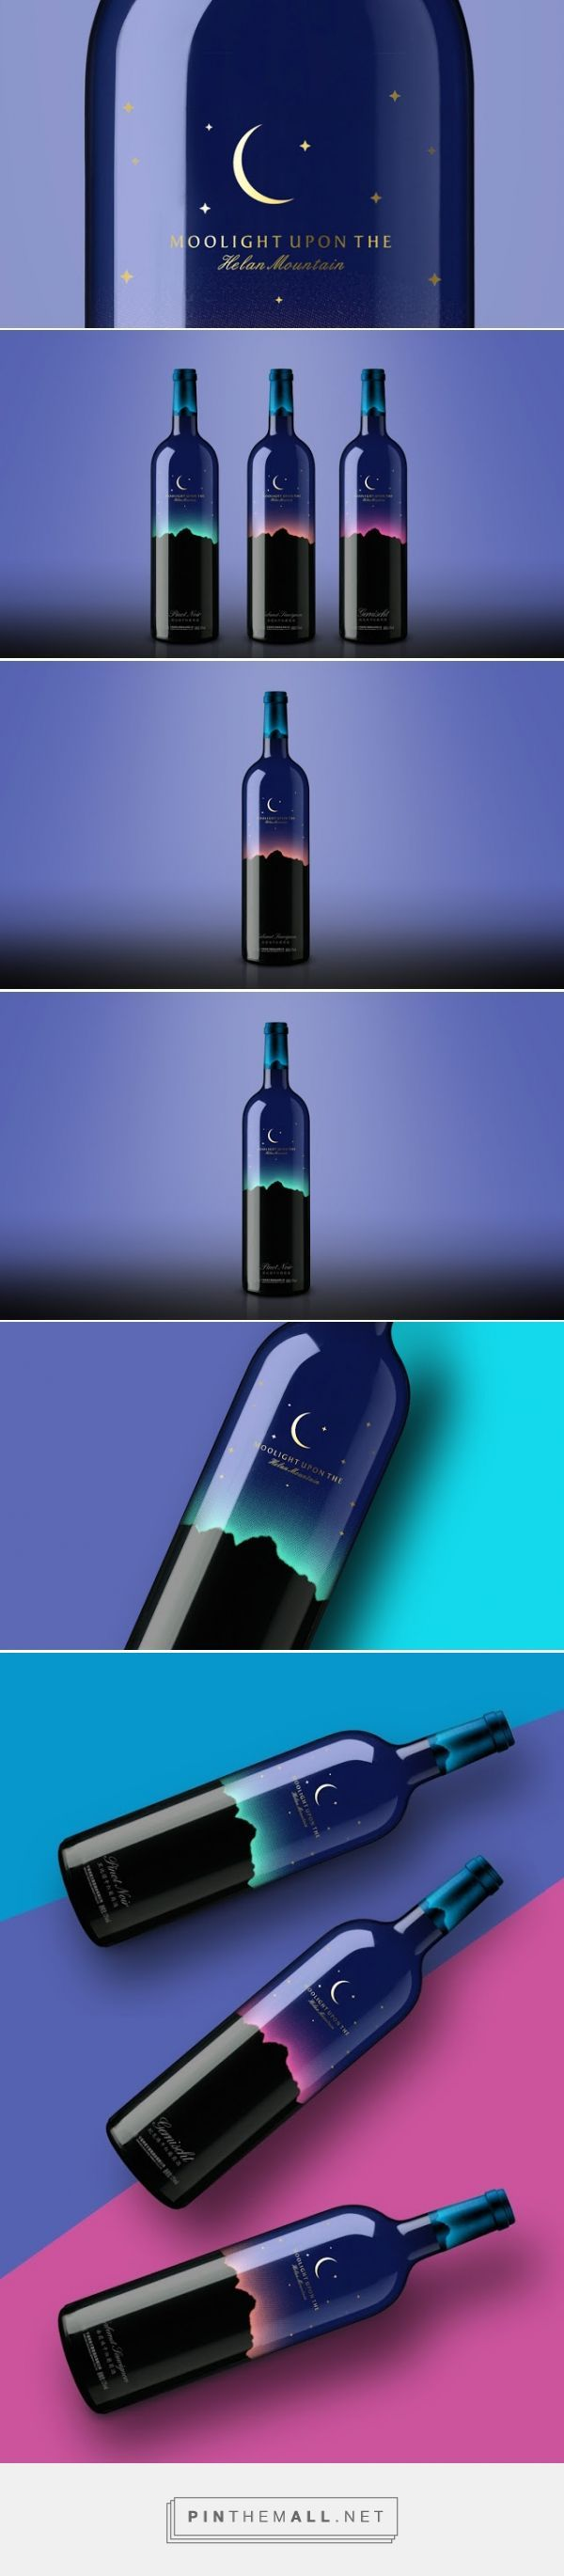 Agency: Pesign Design Project Type: Produced, Commercial Work Packaging Content: Wine Location: Shen Zhen, China: